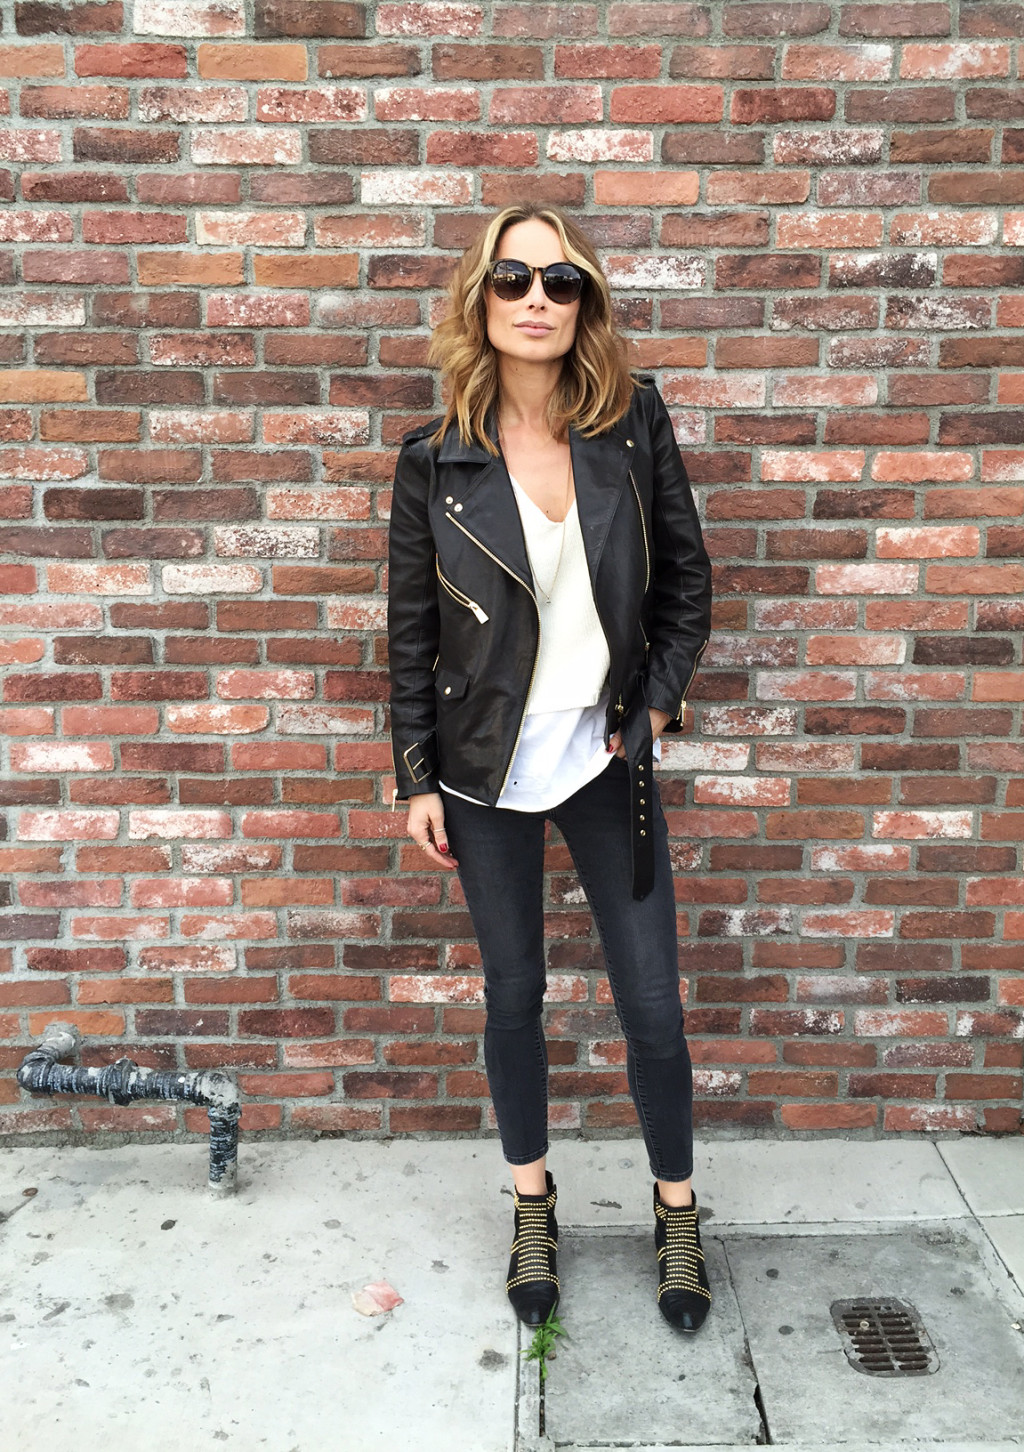 If you're aiming for a cool and casual style, try pairing a leather jacket with skinny denim jeans and a plain white tee. This look is super easy, but will always afford you a stylish, smart aesthetic. Via Anine Bing. Outfit: Anine Bing.